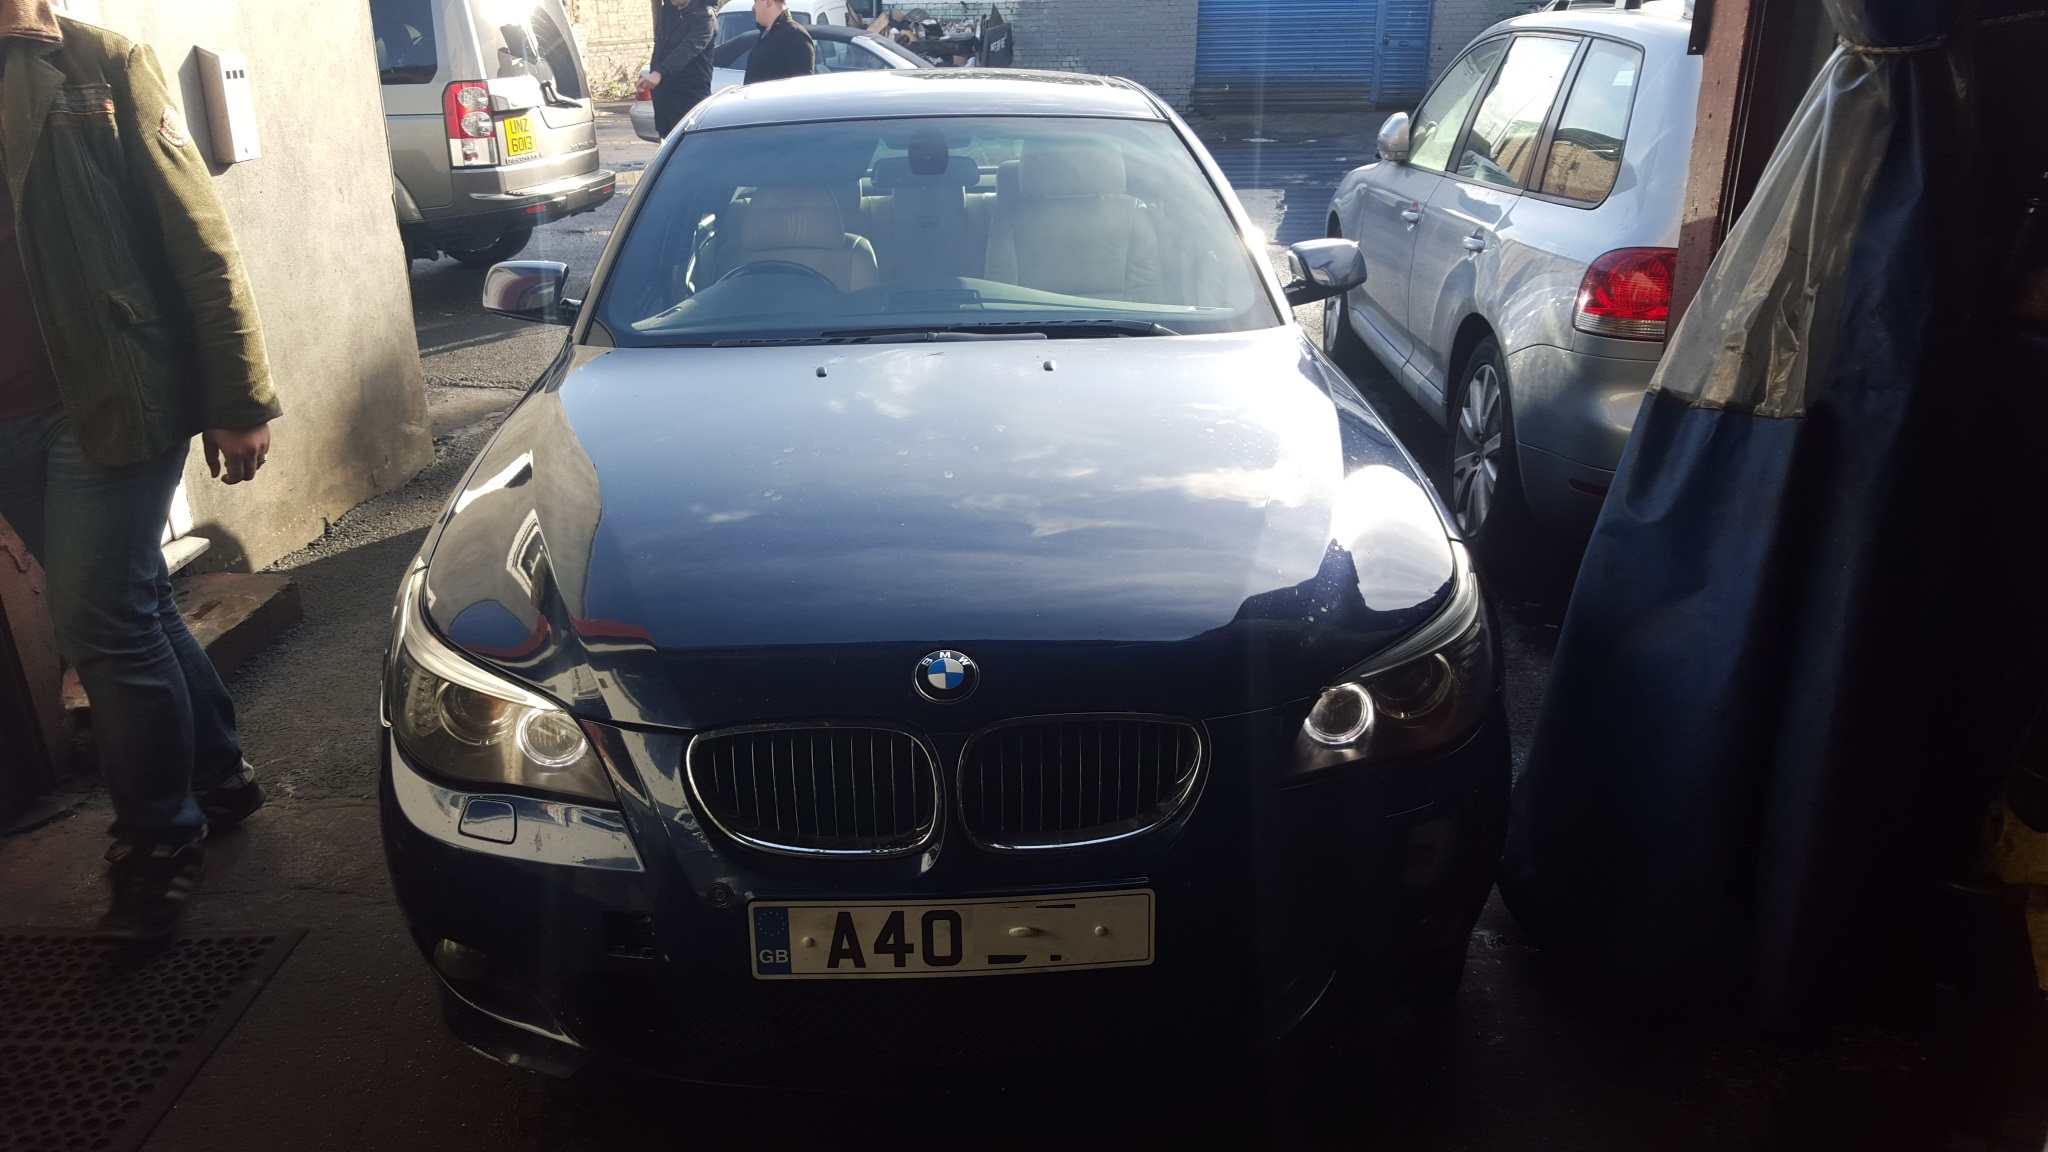 BMW 525D engine replacement complete